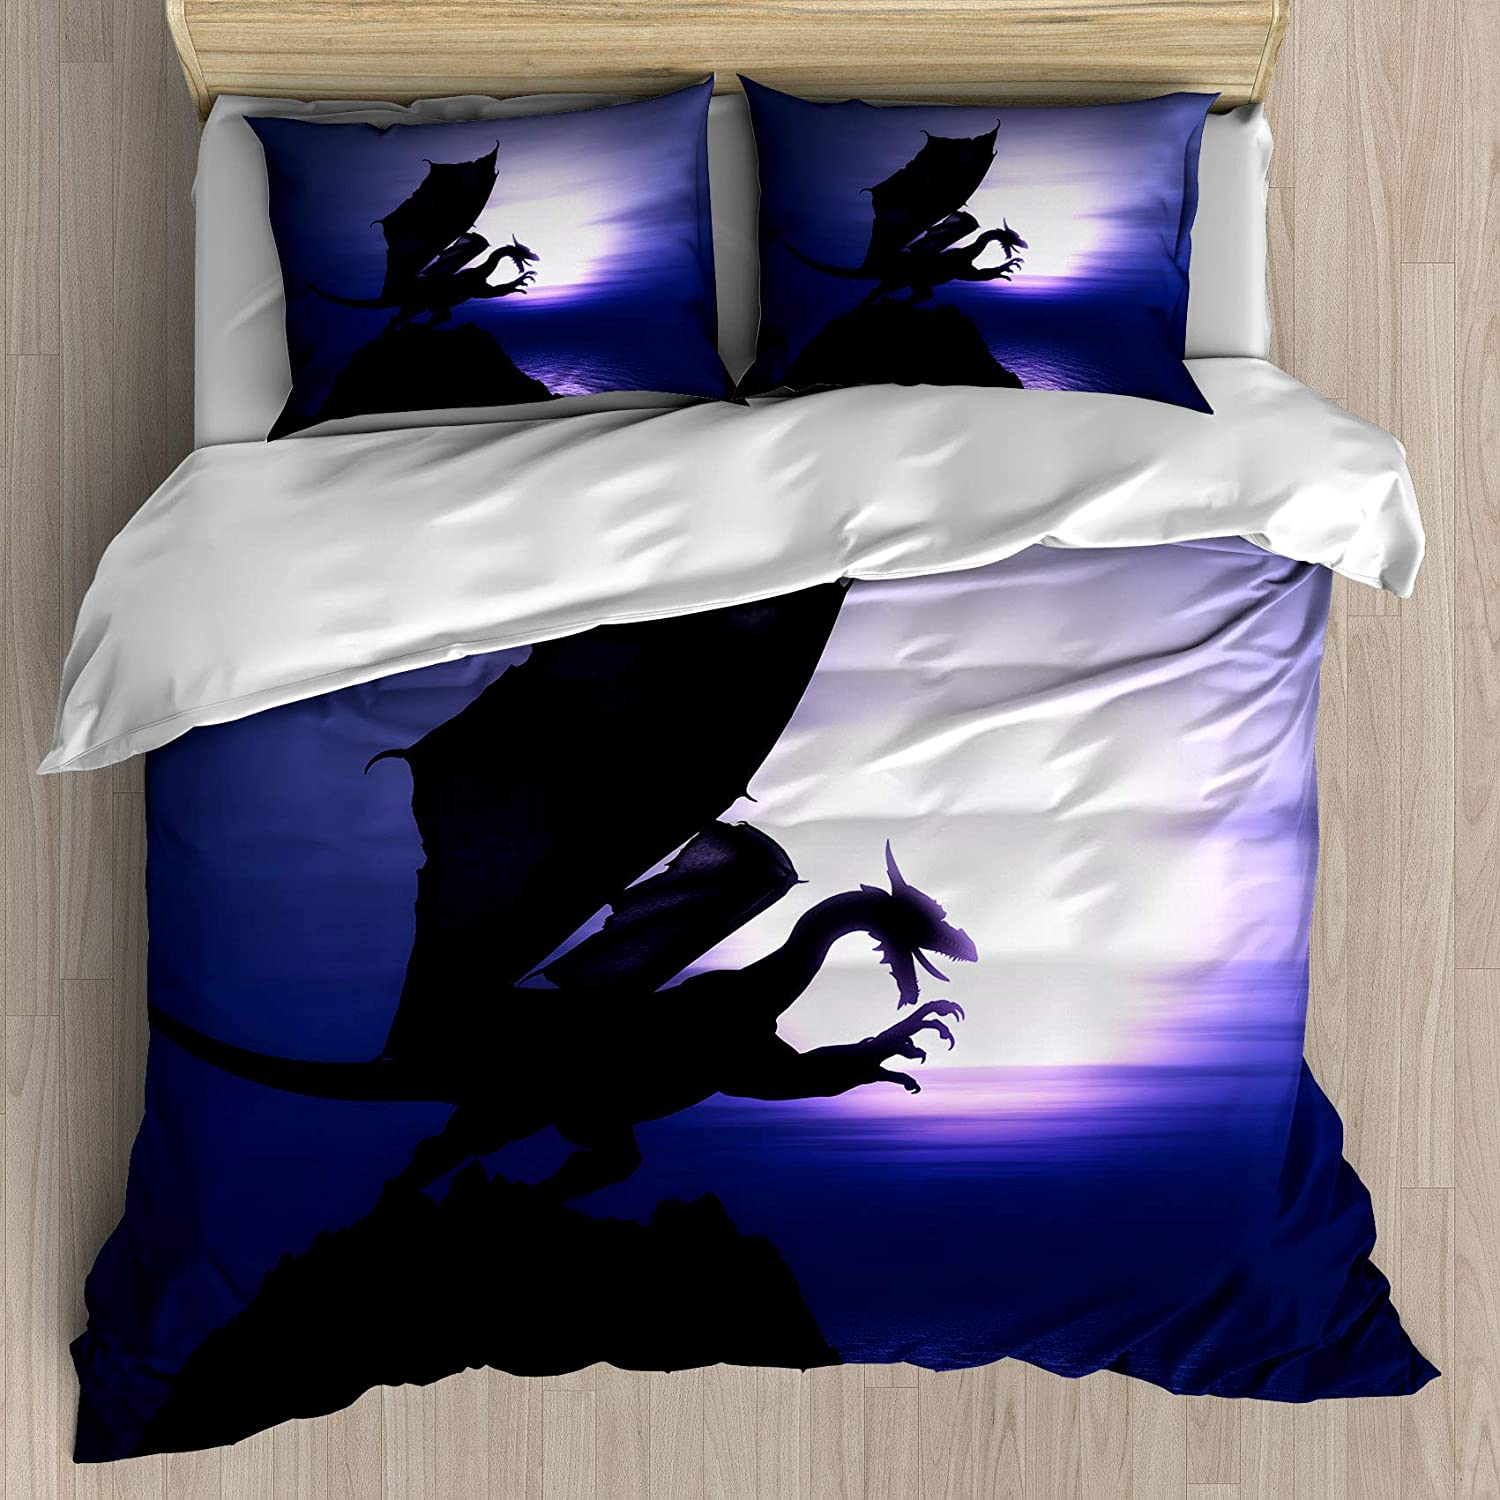 FEIDANNO Dragon Decor Duvet Cover Set Twin Size,3D Render of a Fantasy Dragon on a Cliff Against a Sunset Ocean,Decorative 3 Piece Bedding Set with 2 Pillow Shams.(Blue and Black,Twin)